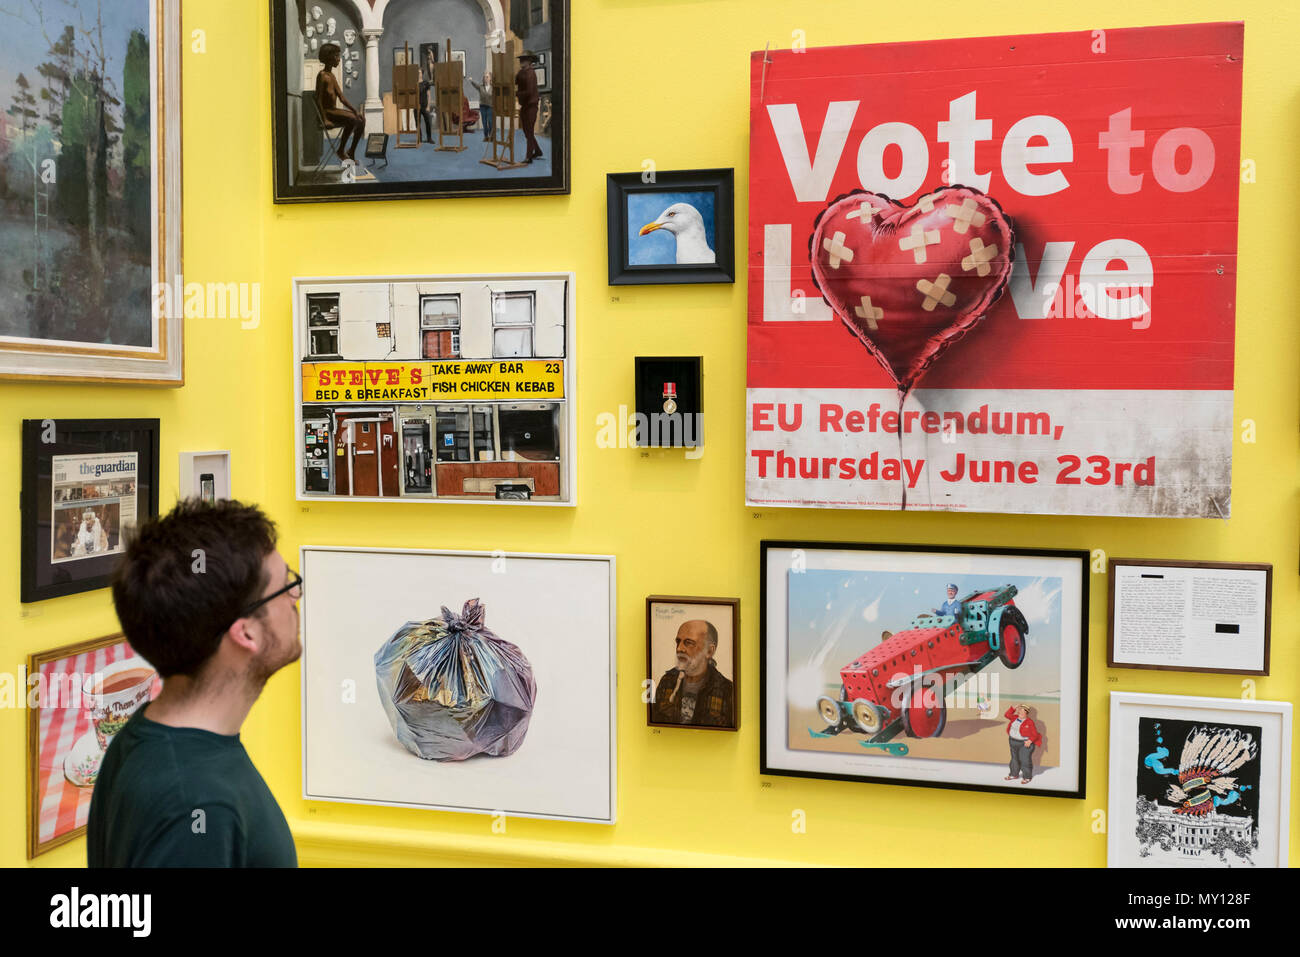 London, UK.  5 June 2018. A staff member views 'Vote to Love' by Bansky at the preview of the 250th Summer Exhibition at the Royal Academy of Arts in Piccadilly, which has been co-ordinated by Grayson Perry RA this year.  Running concurrently, is The Great Spectacle, featuring highlights from the past 250 years.  Both shows run 12 June to 19 August 2018. Credit: Stephen Chung / Alamy Live News - Stock Image